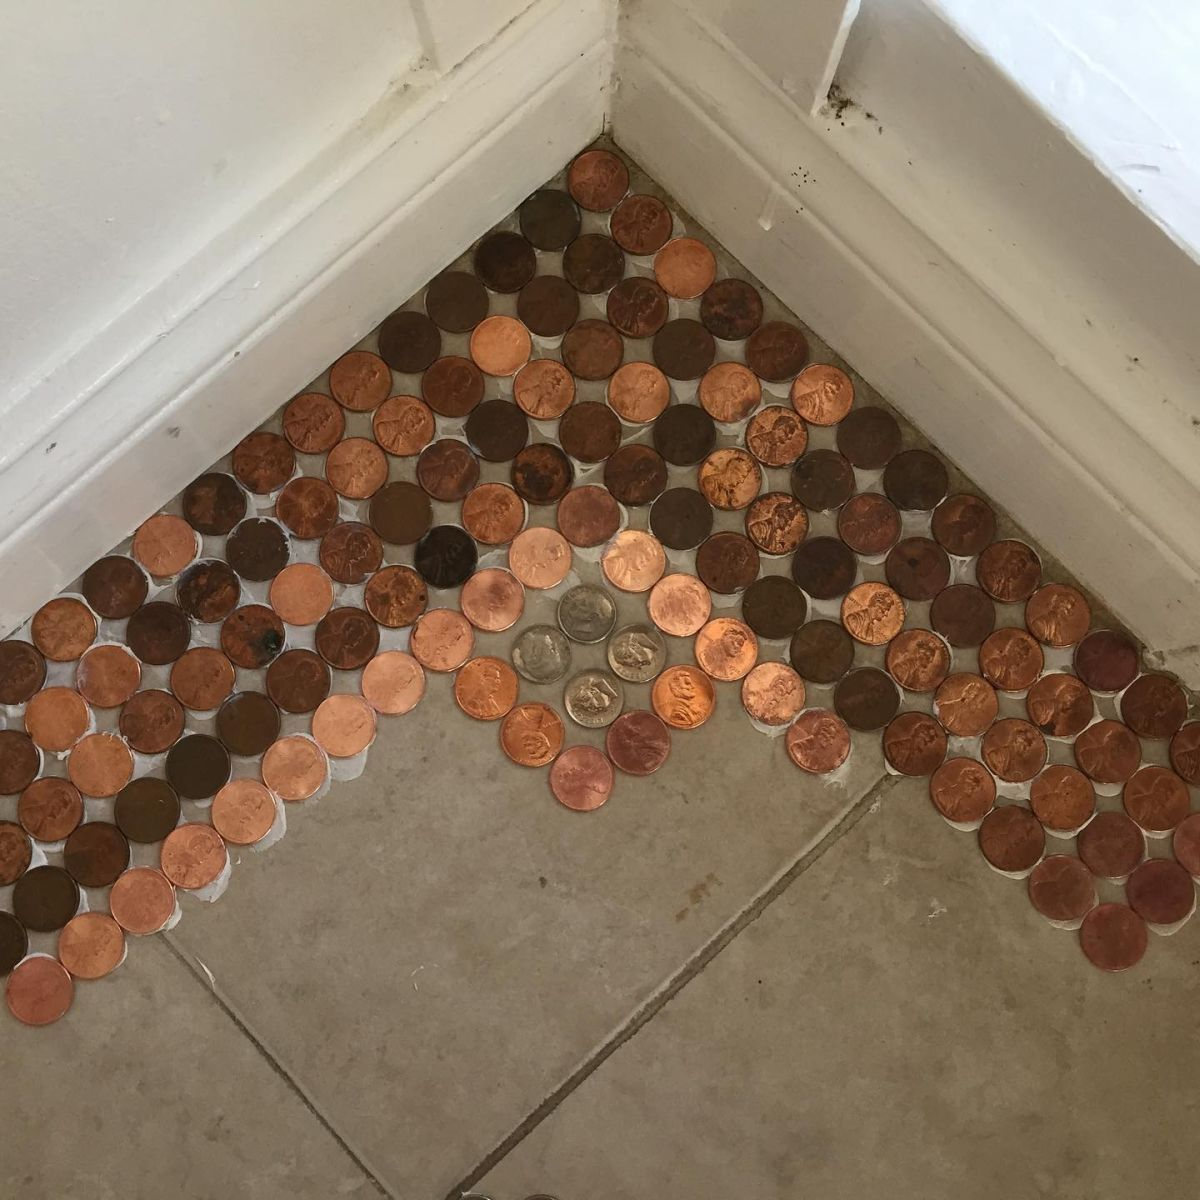 When you're designing your own penny floor, start from a corner to make sure everything lines up in the end